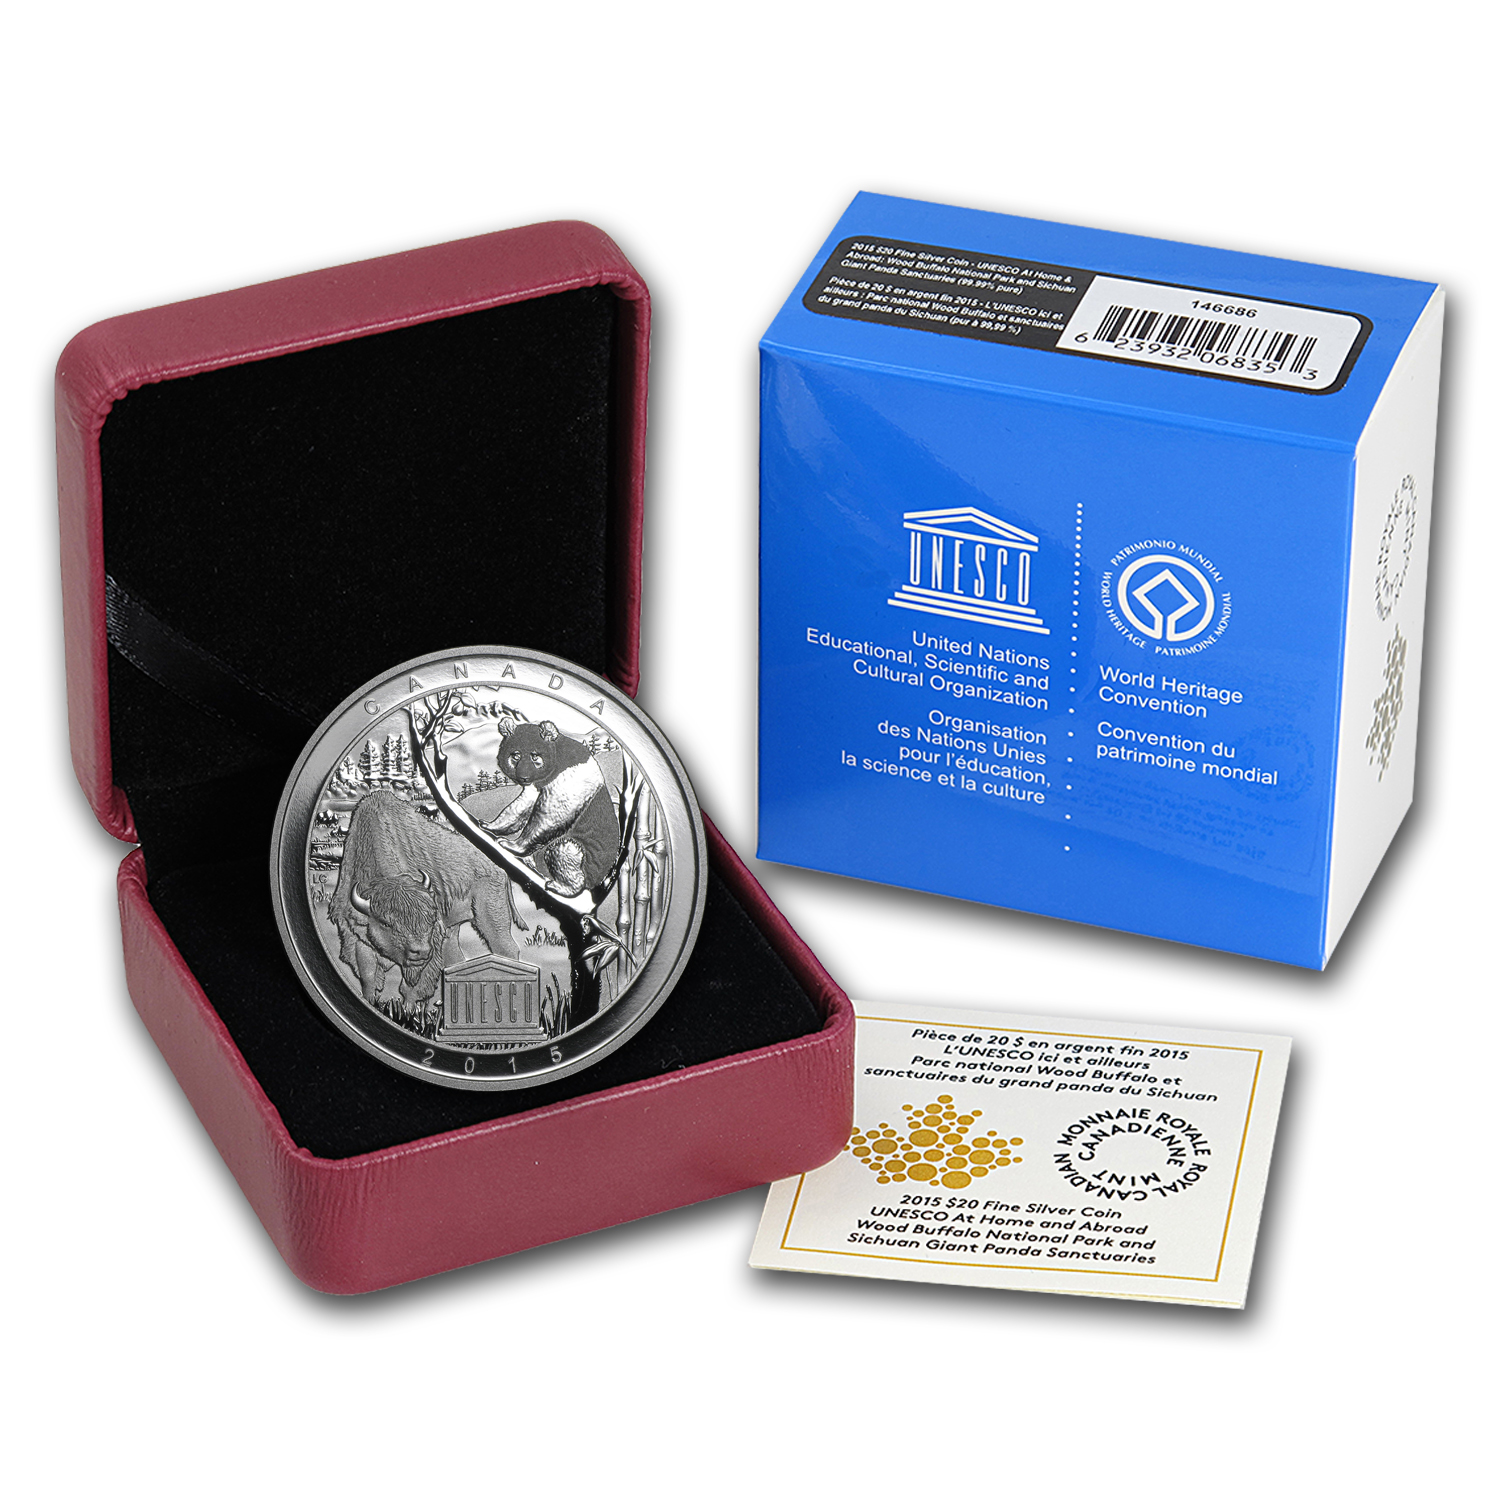 2015 Canada Silver $20 Proof UNESCO Buffalo & Panda Sanctuaries